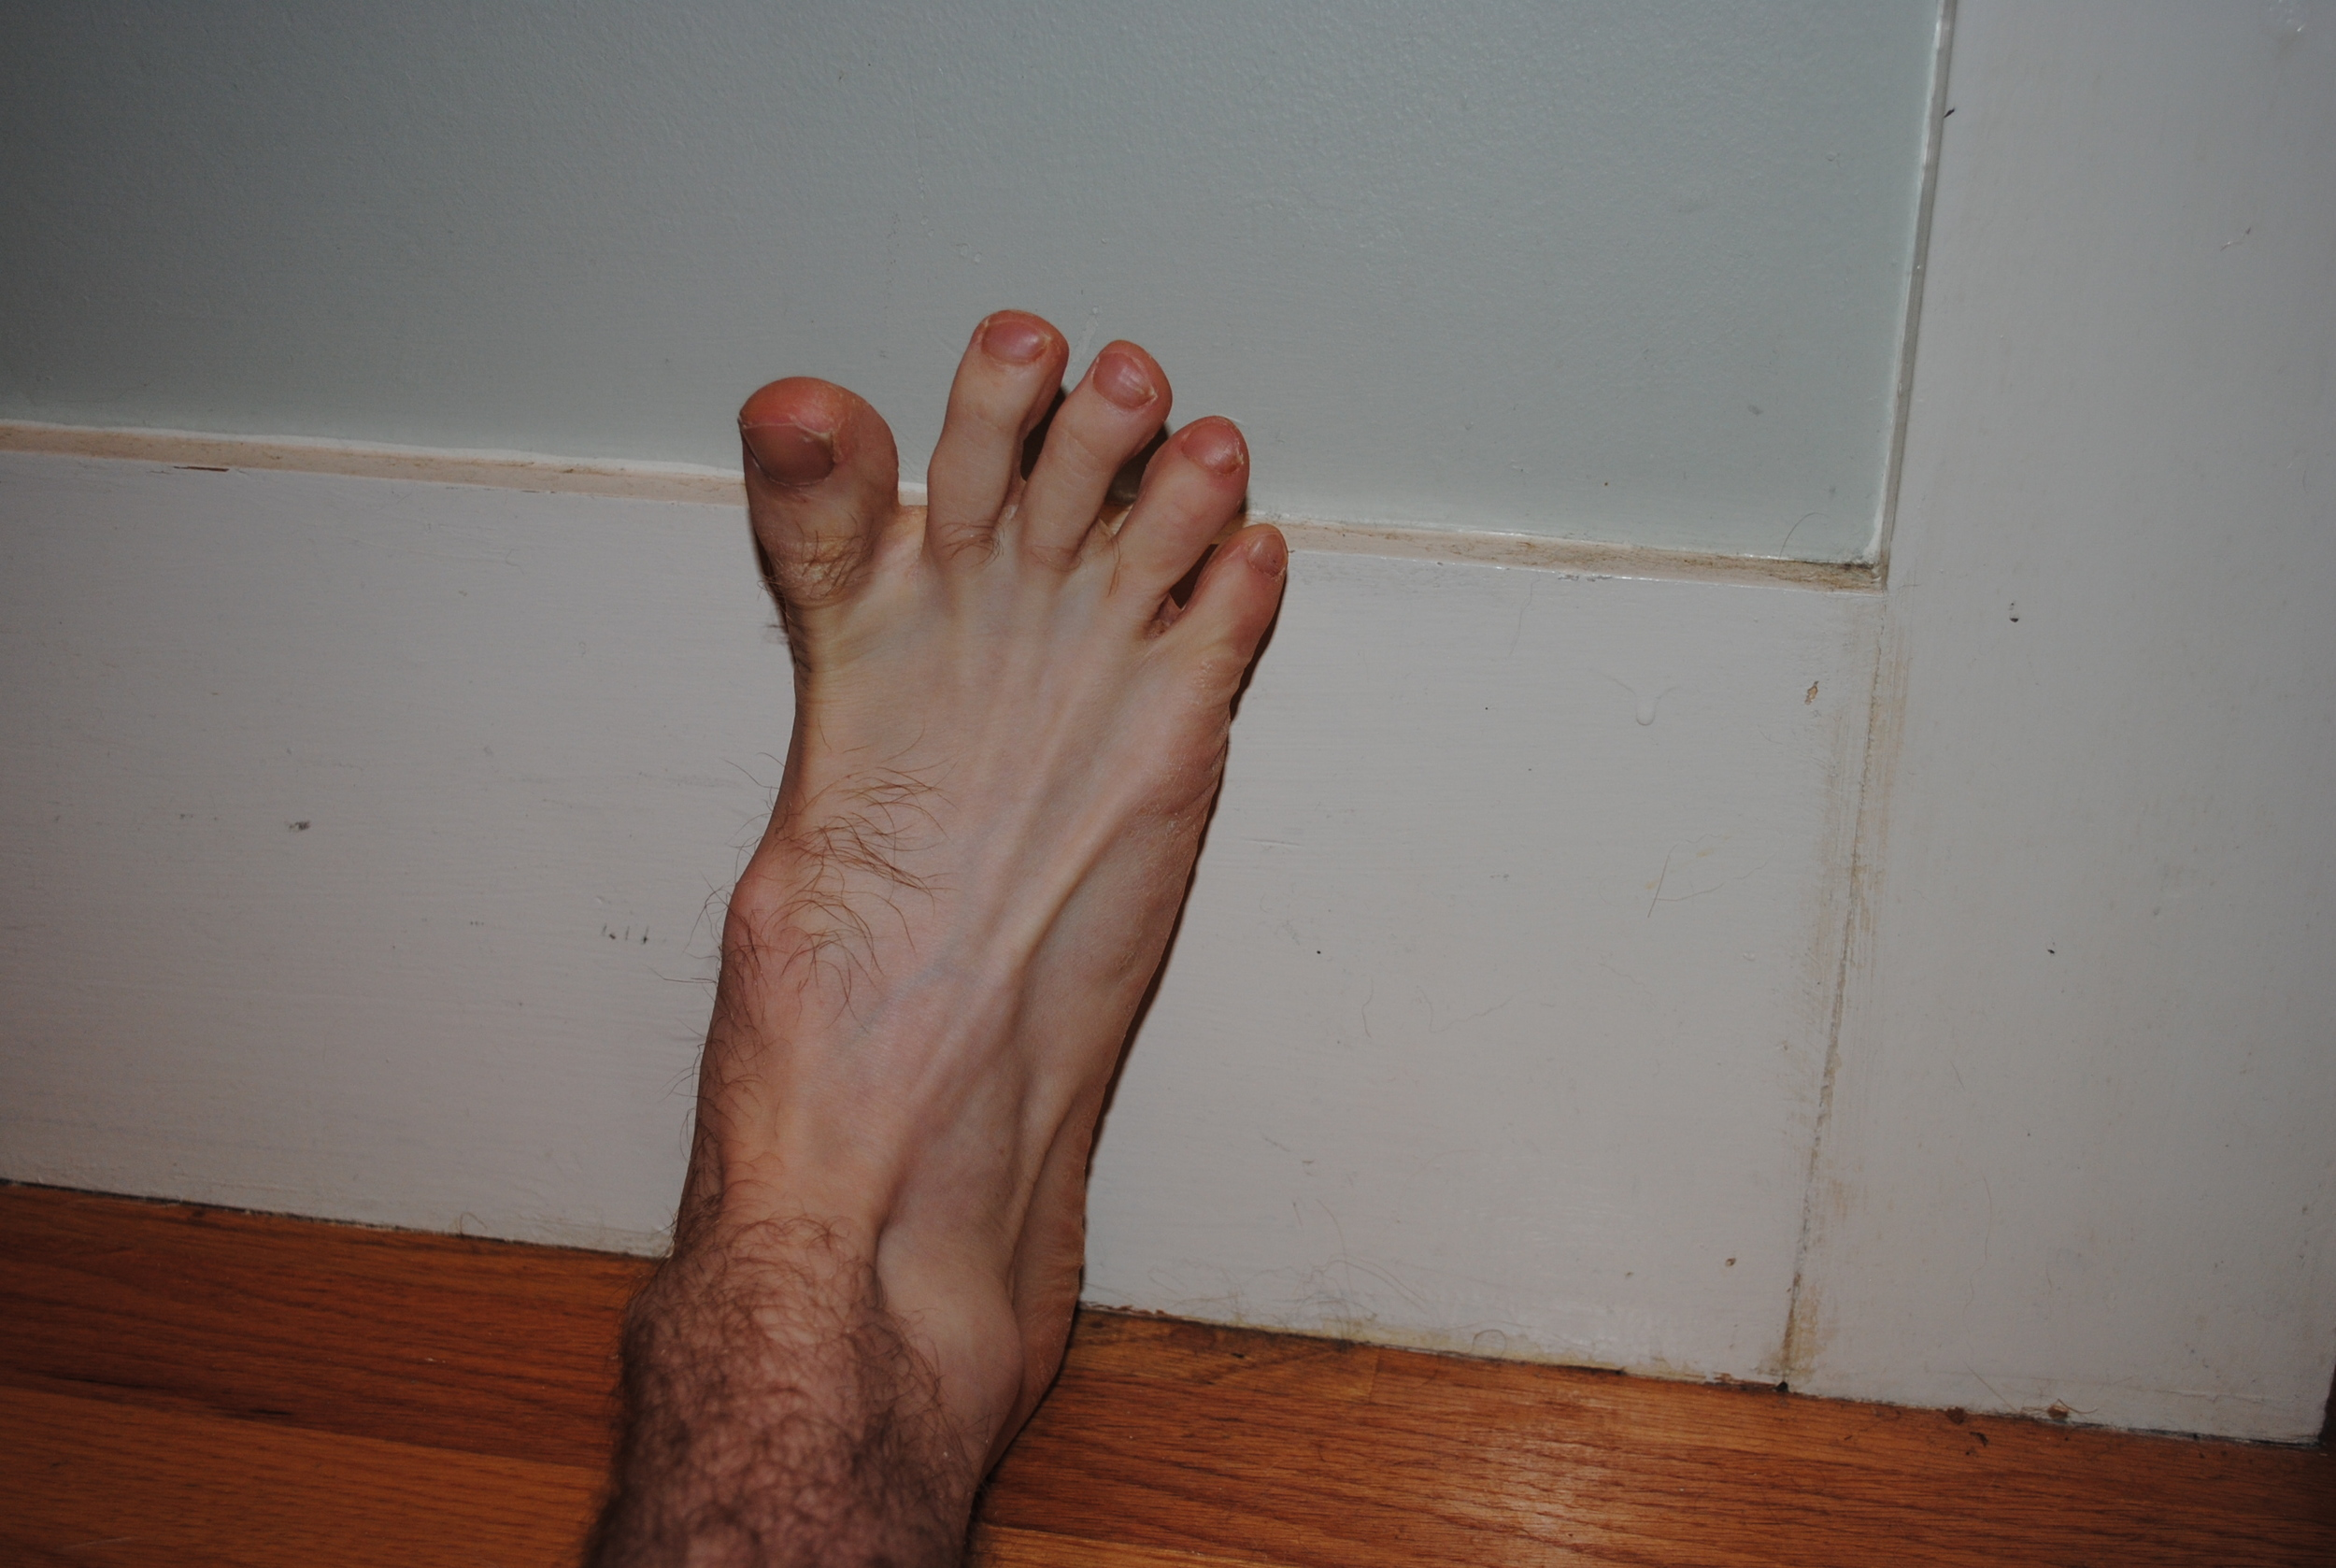 Spread your toes apart as far as you can.